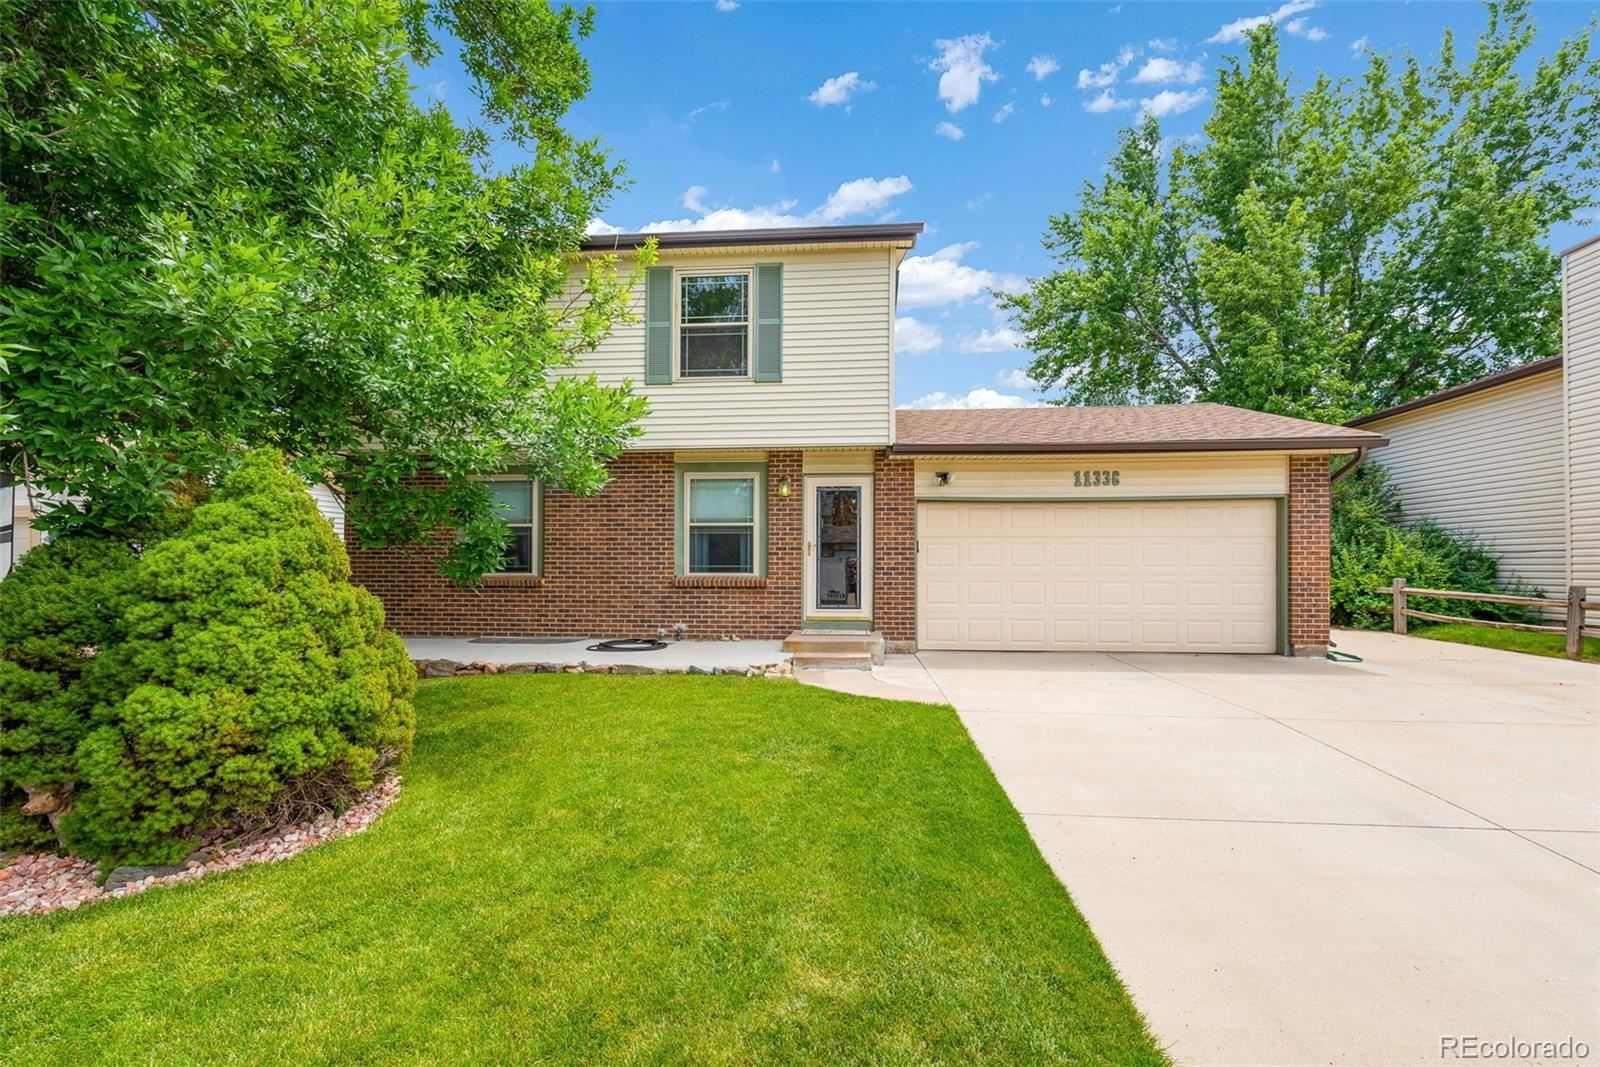 11336 W 107th Place, Westminster, CO 80021 - #: 4348961